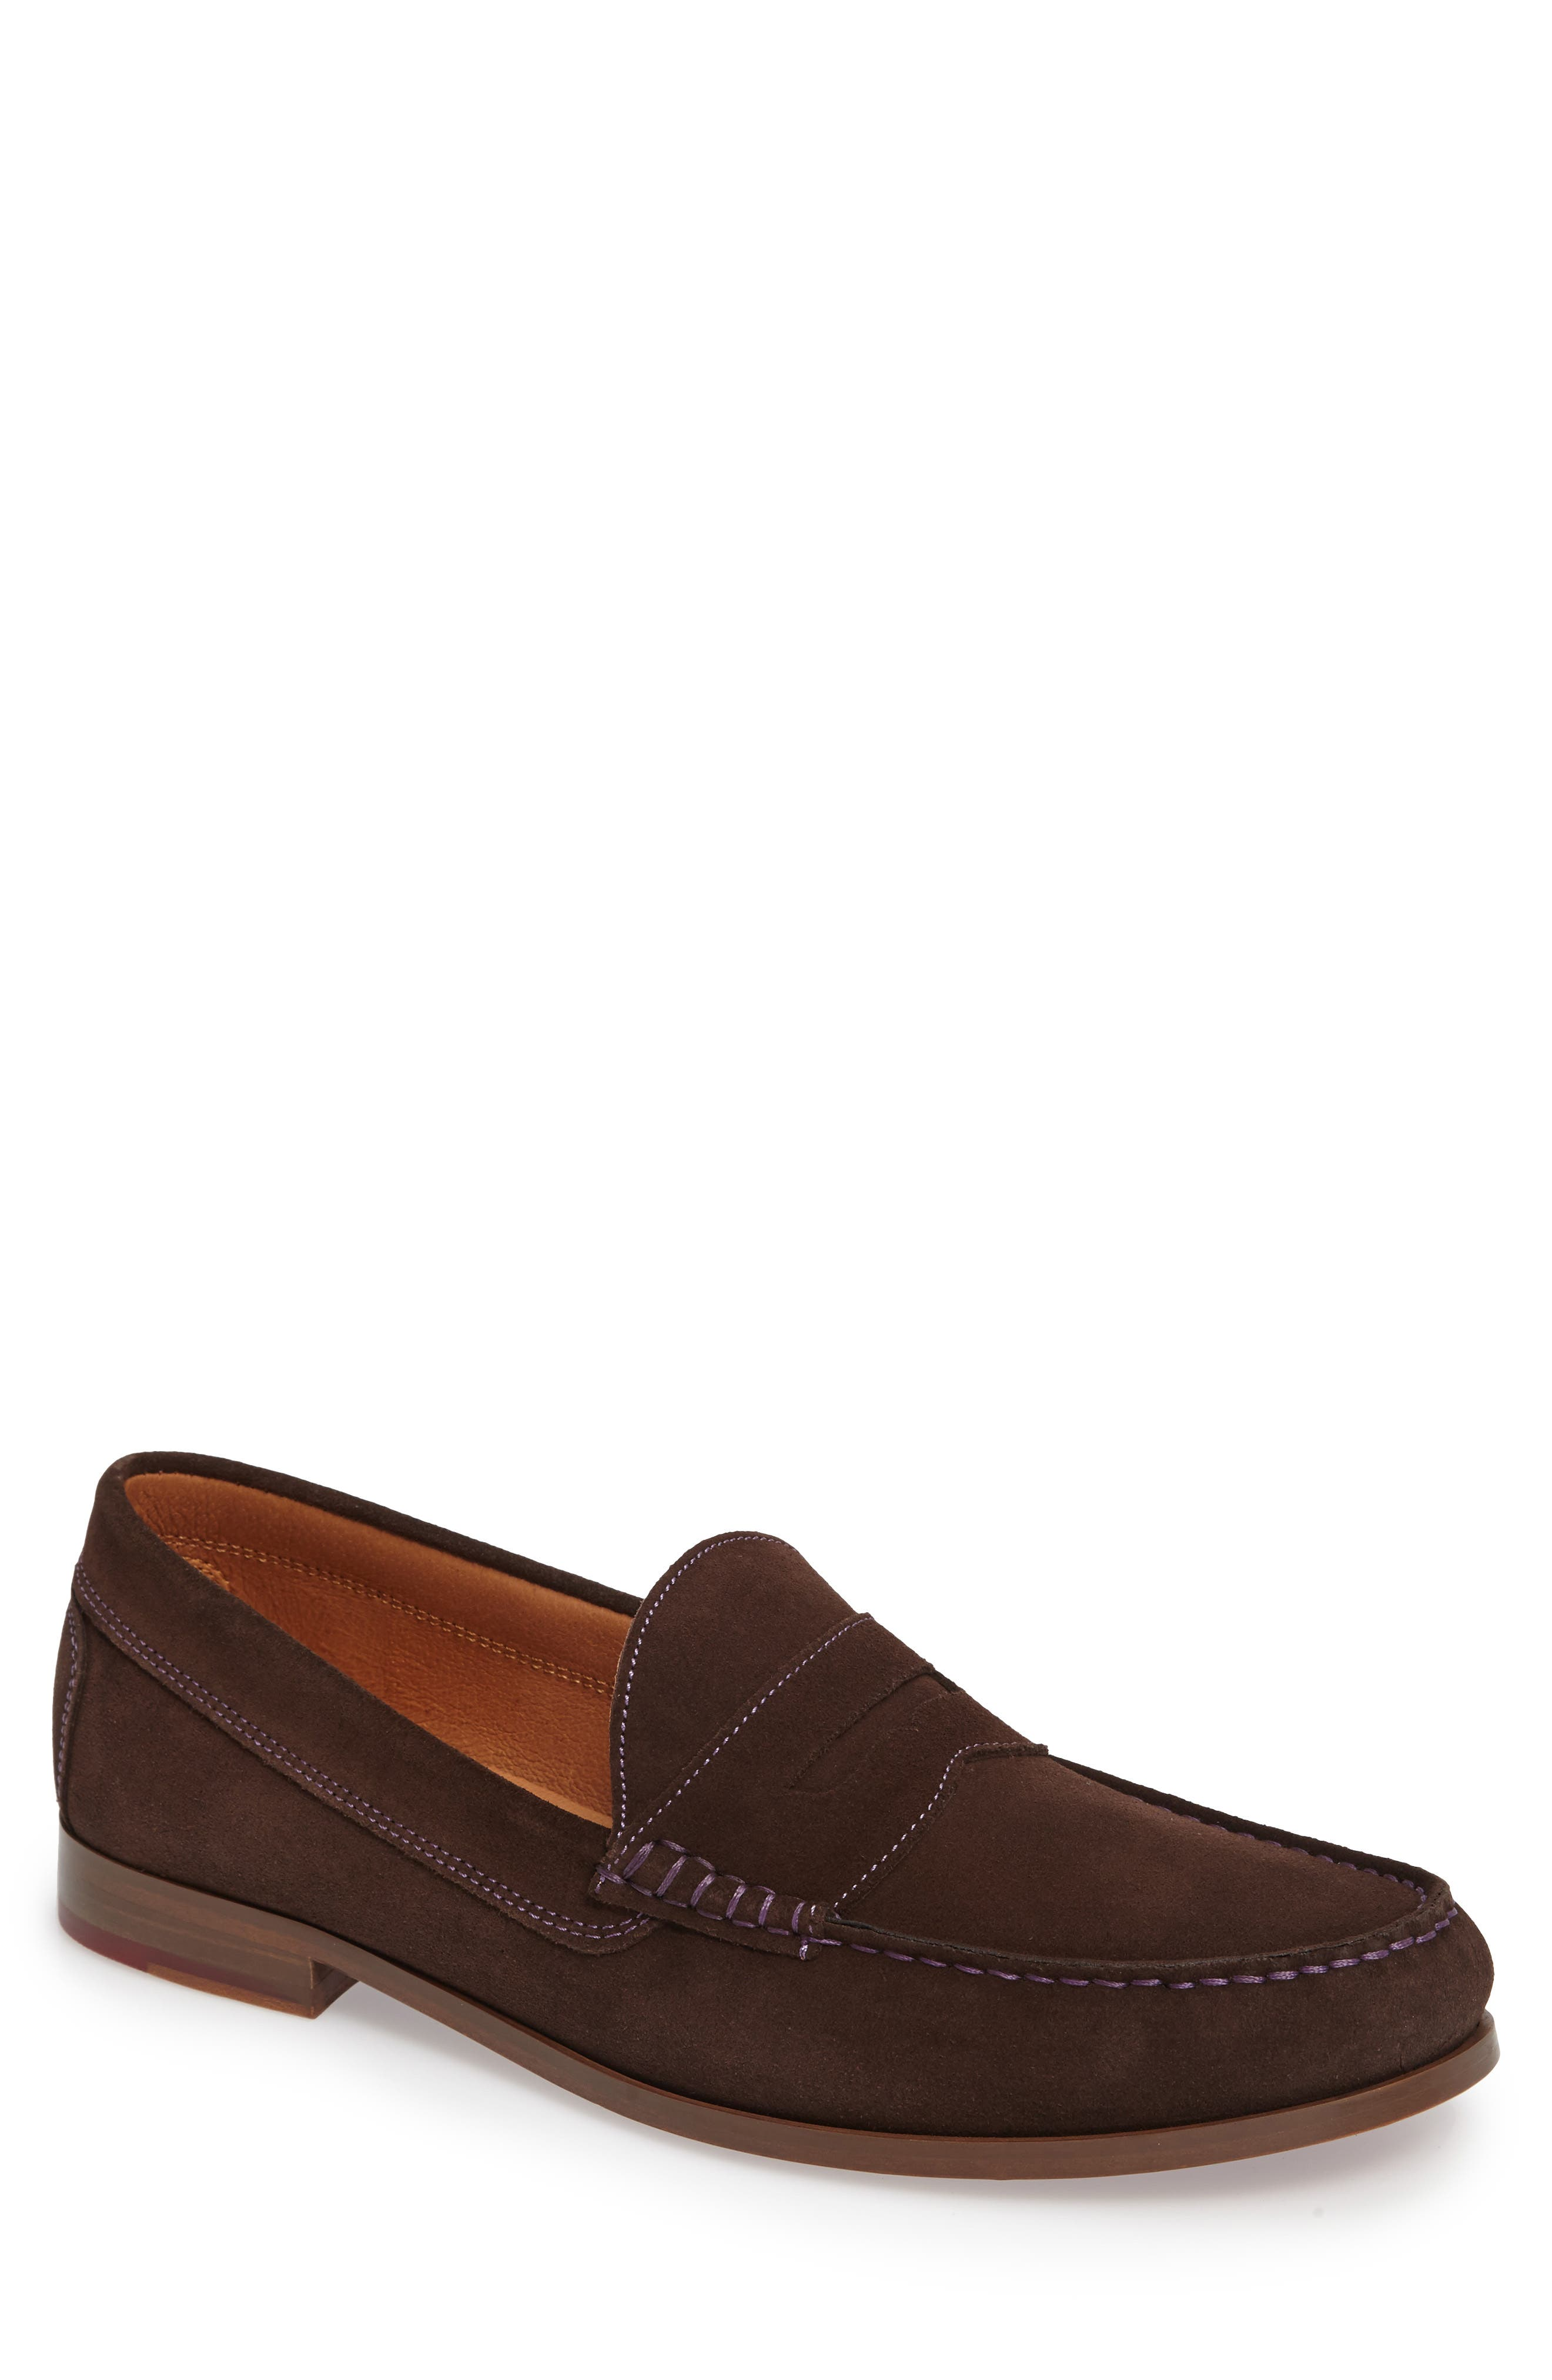 Nicola Penny Loafer,                             Main thumbnail 5, color,